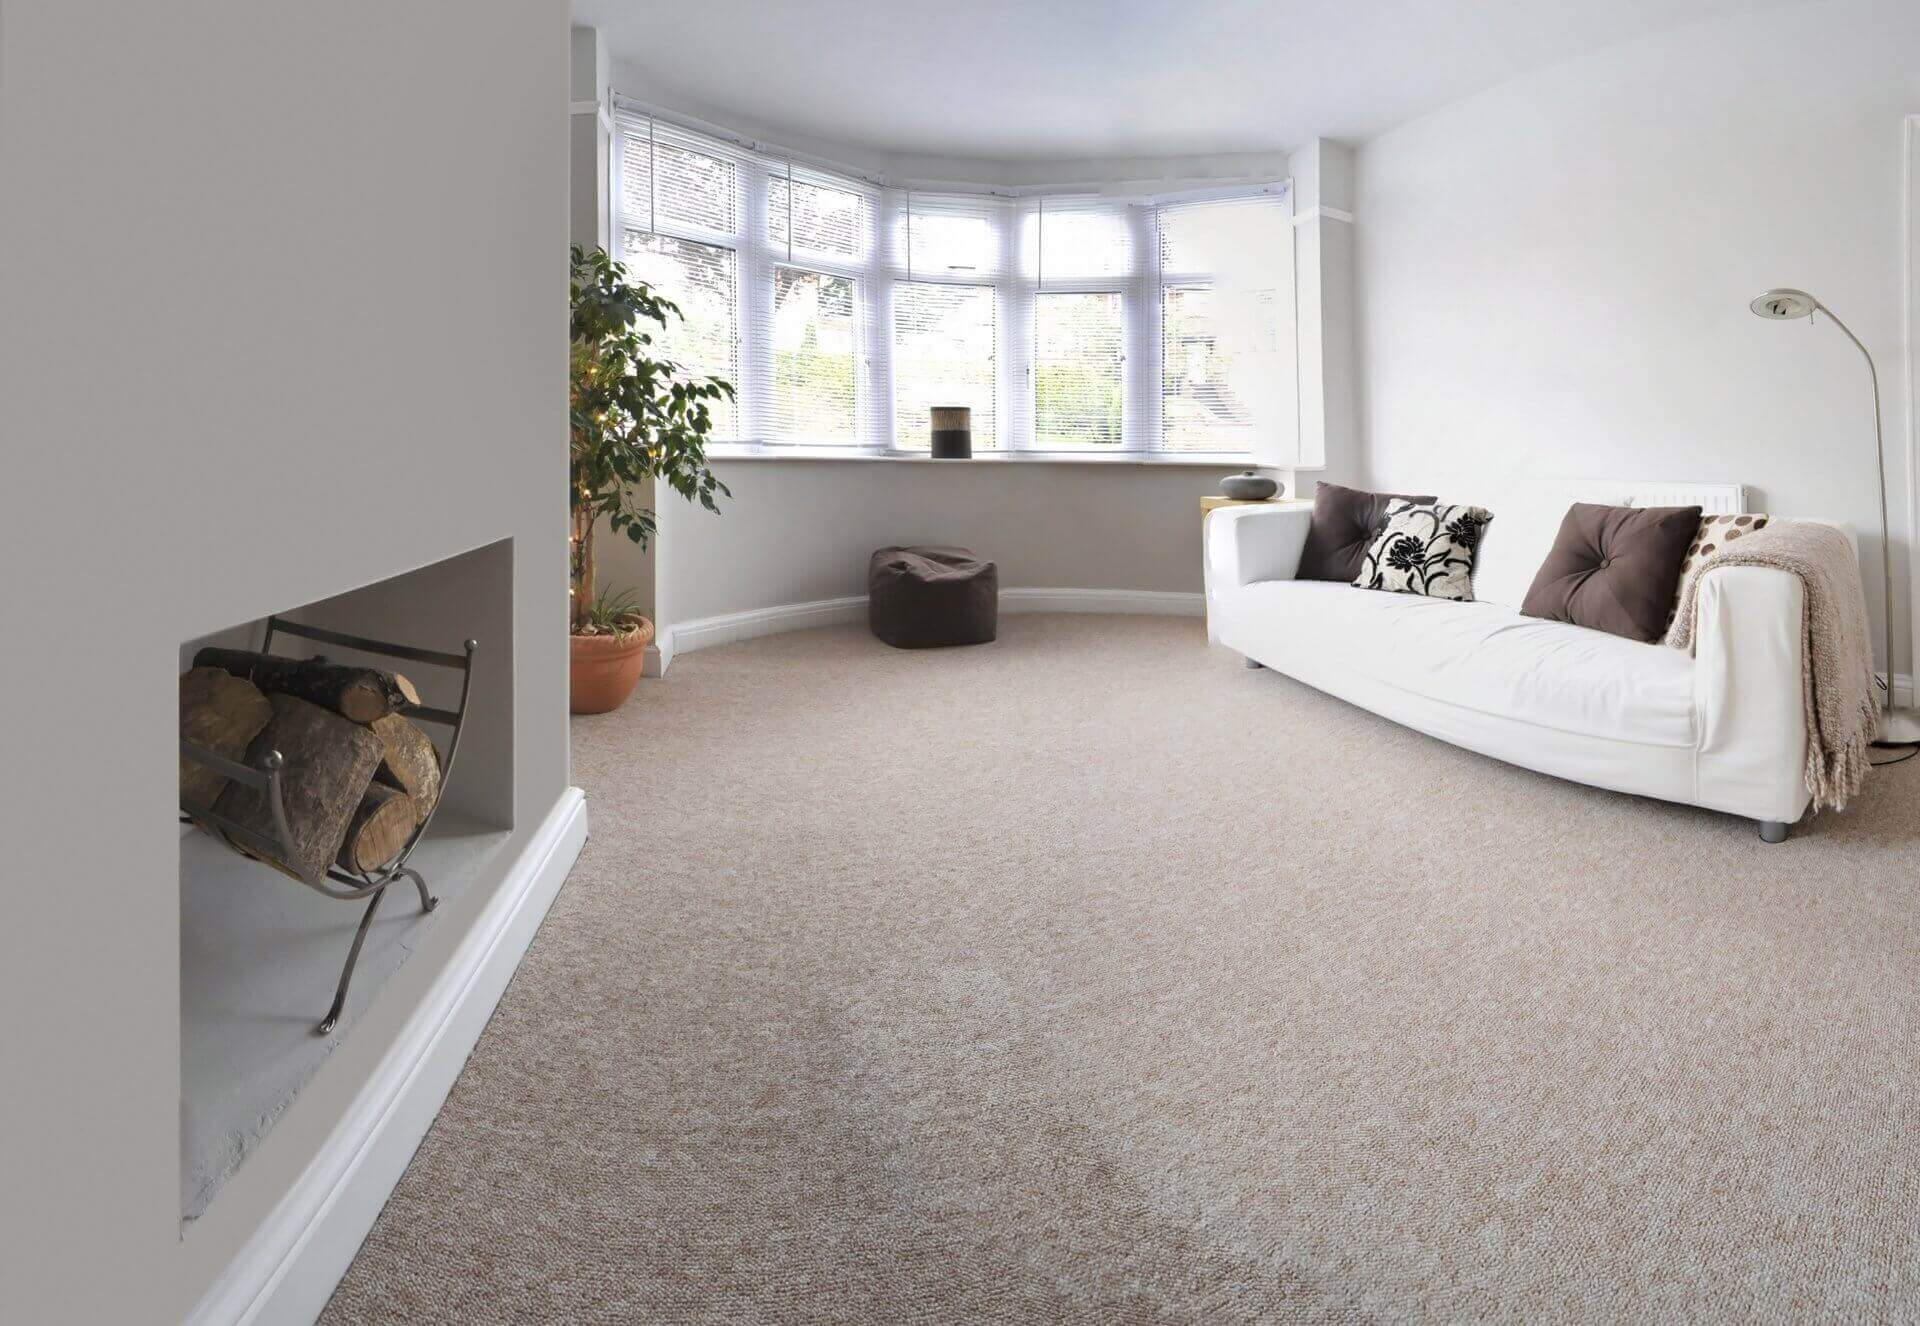 living room with large window and cream carpet